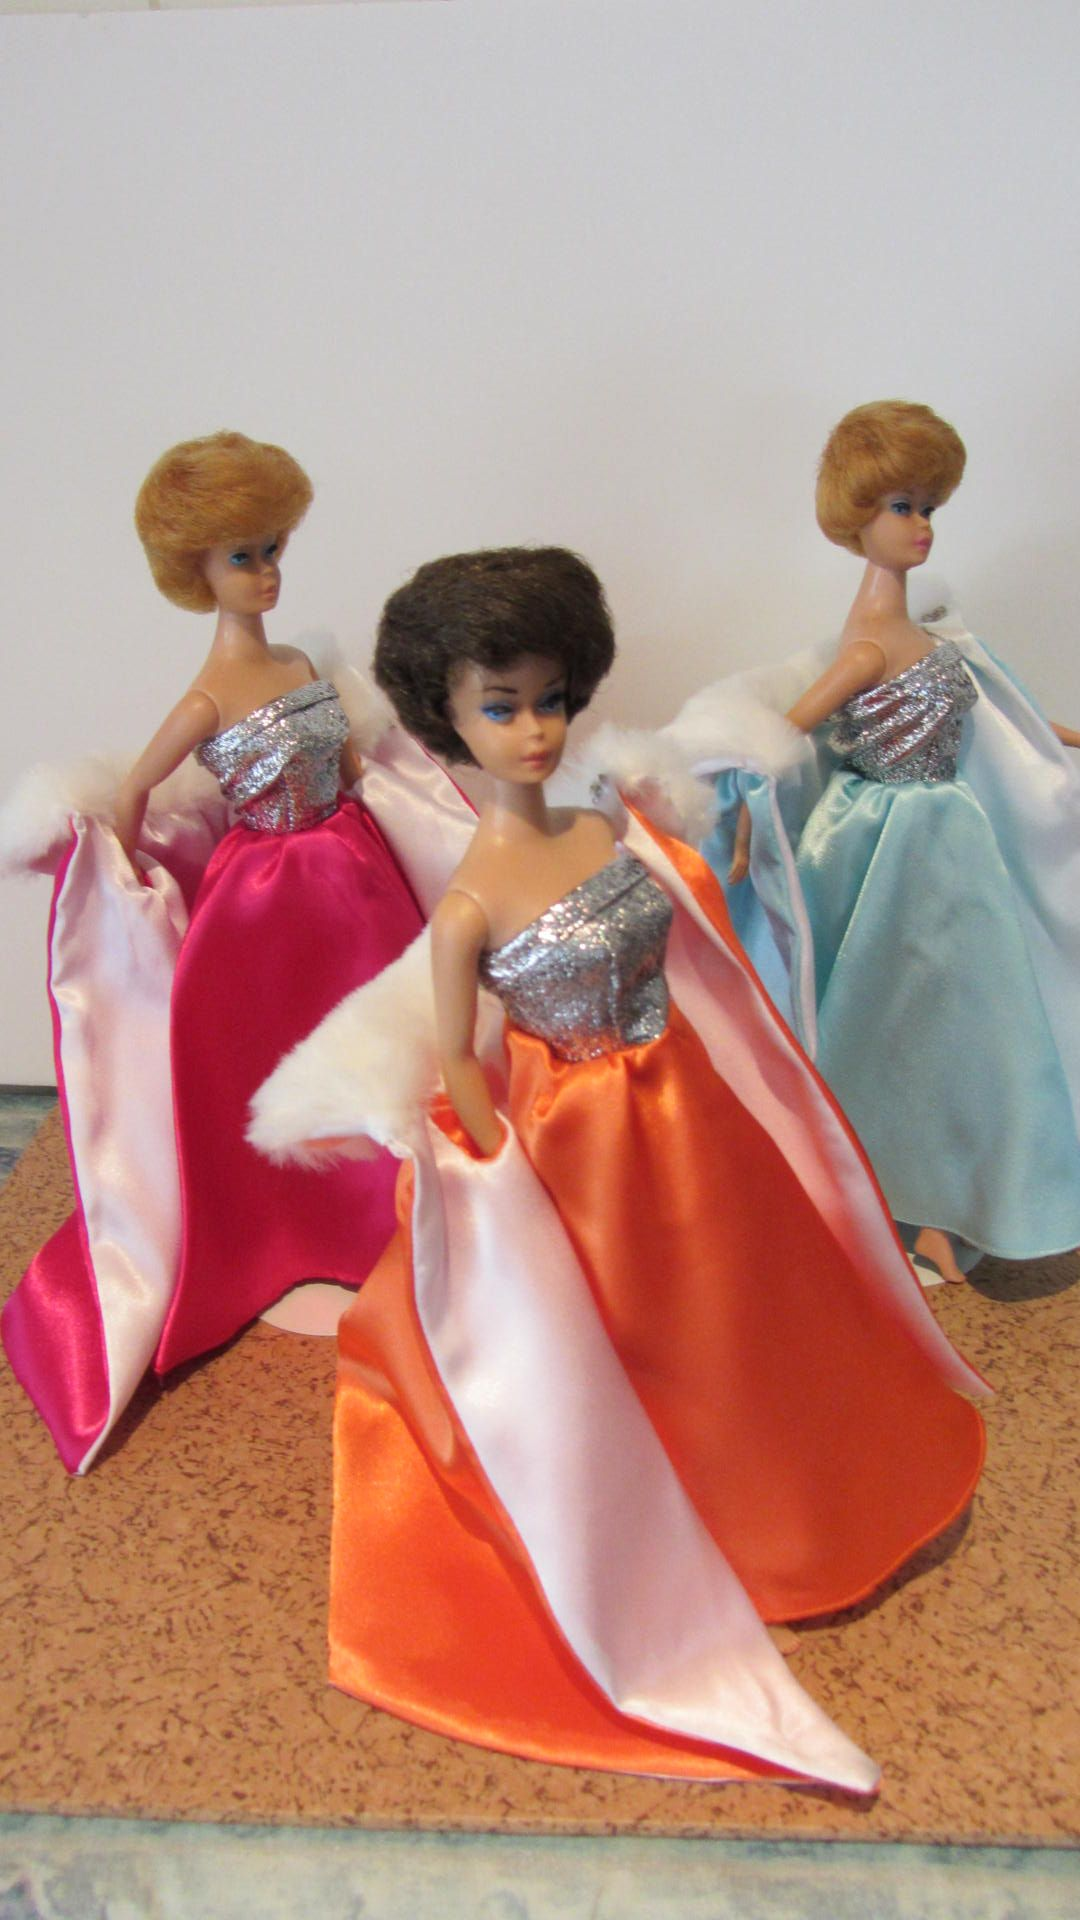 Blonde barbie pink dress  Fashions by me  My Fashion Doll Sewing  Pinterest